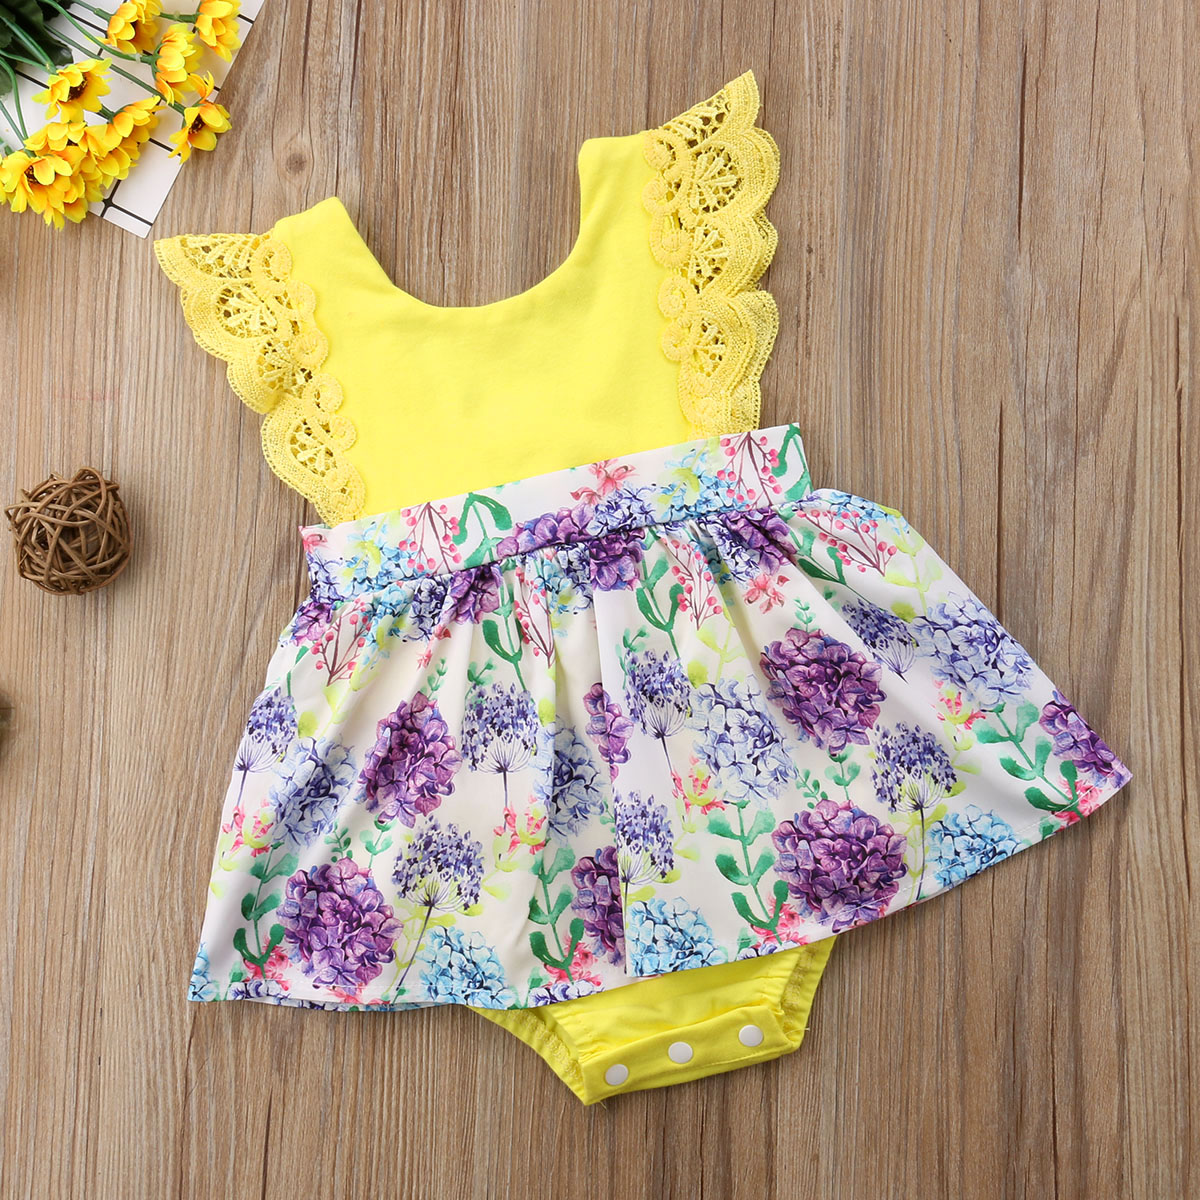 db2119800 2018 Toddler Kid Baby Girls Lace Flower Yellow Sister Match Romper Dress  Outfits Clothes Family Matching Yellow Cute Summer Set-in Matching Family  Outfits ...